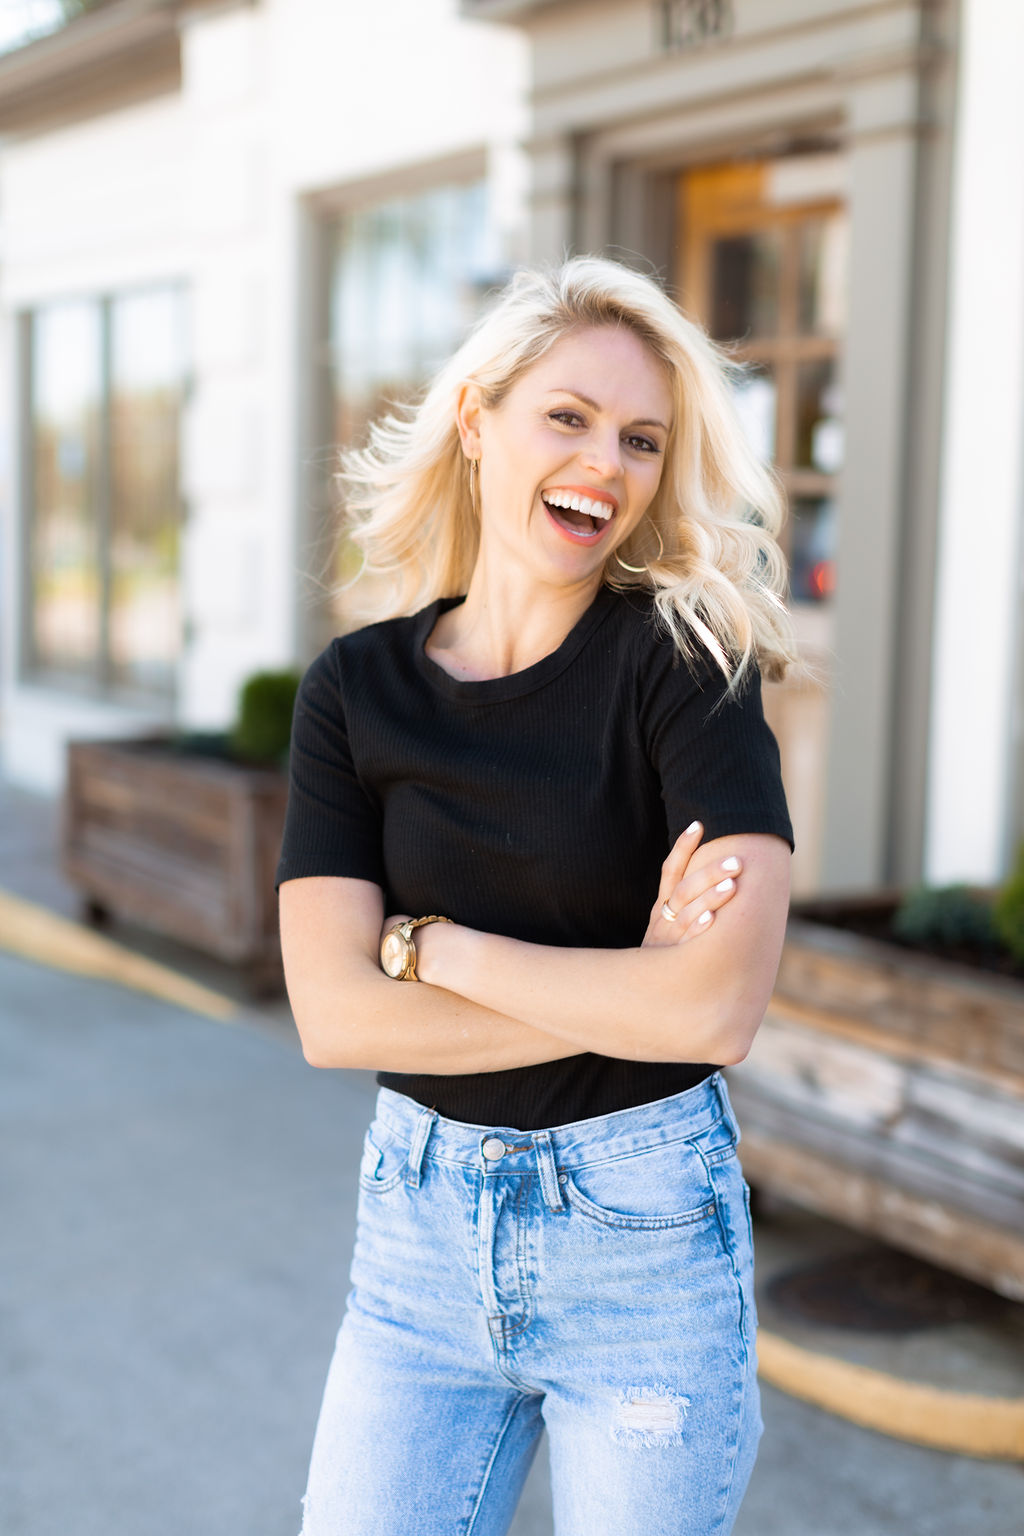 Victoria Marcouillier is Crushing Imposter Syndrome in Female Entrepreneurs with Her Branding and Website Design Studio, BrandWell